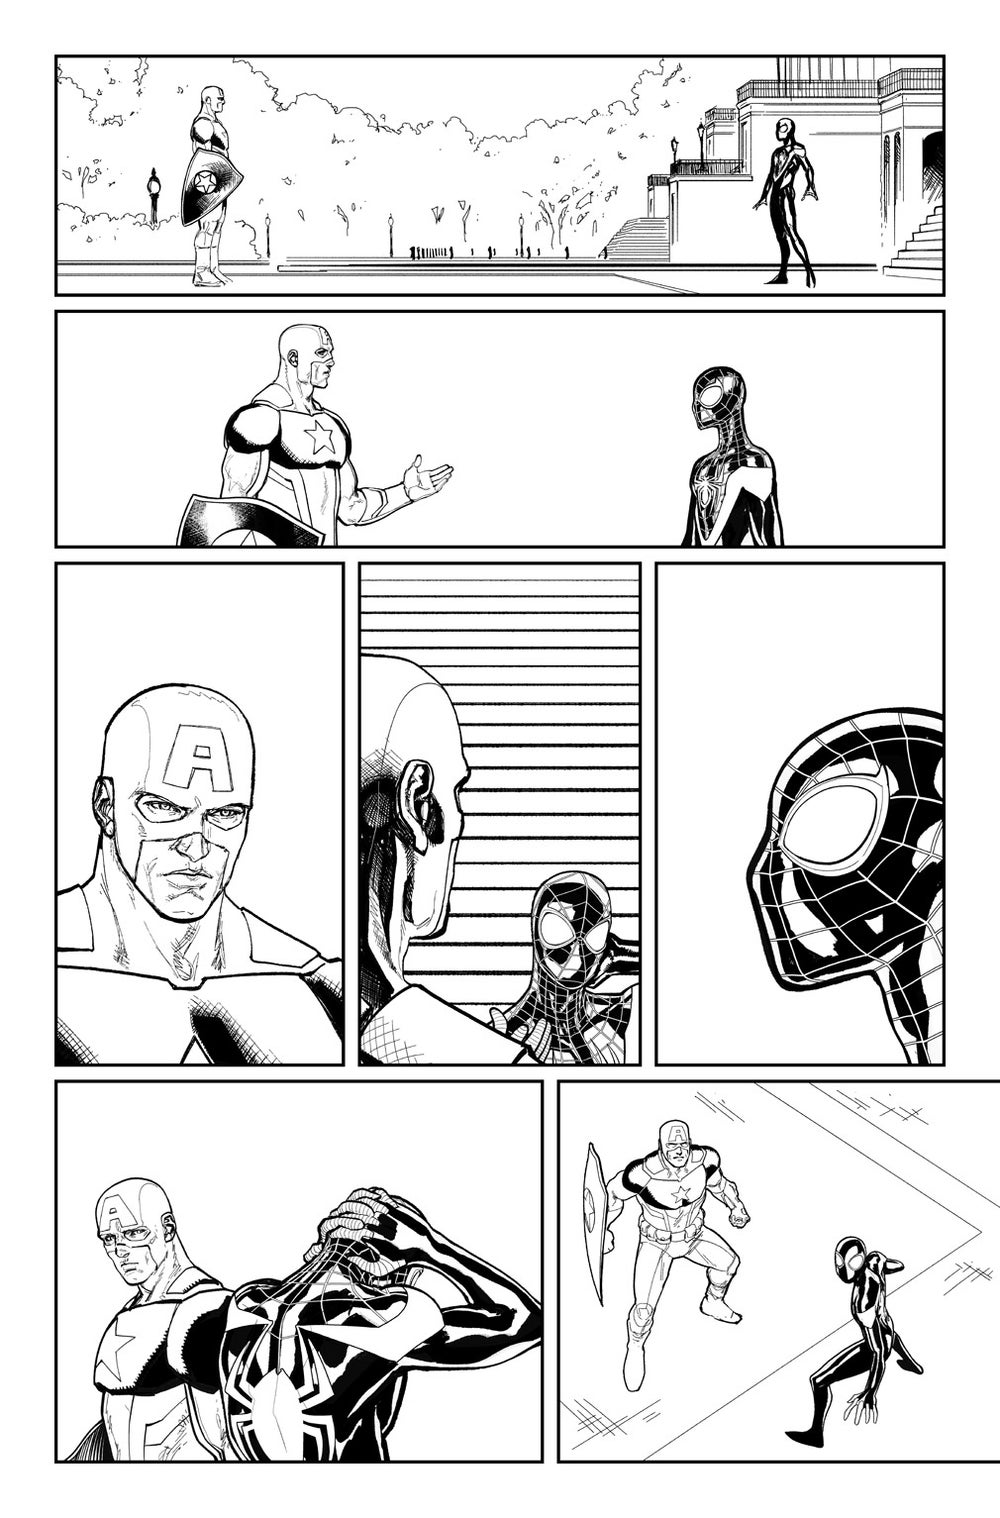 Image of CIVIL WAR II #7, p.20 ARTIST'S PROOF